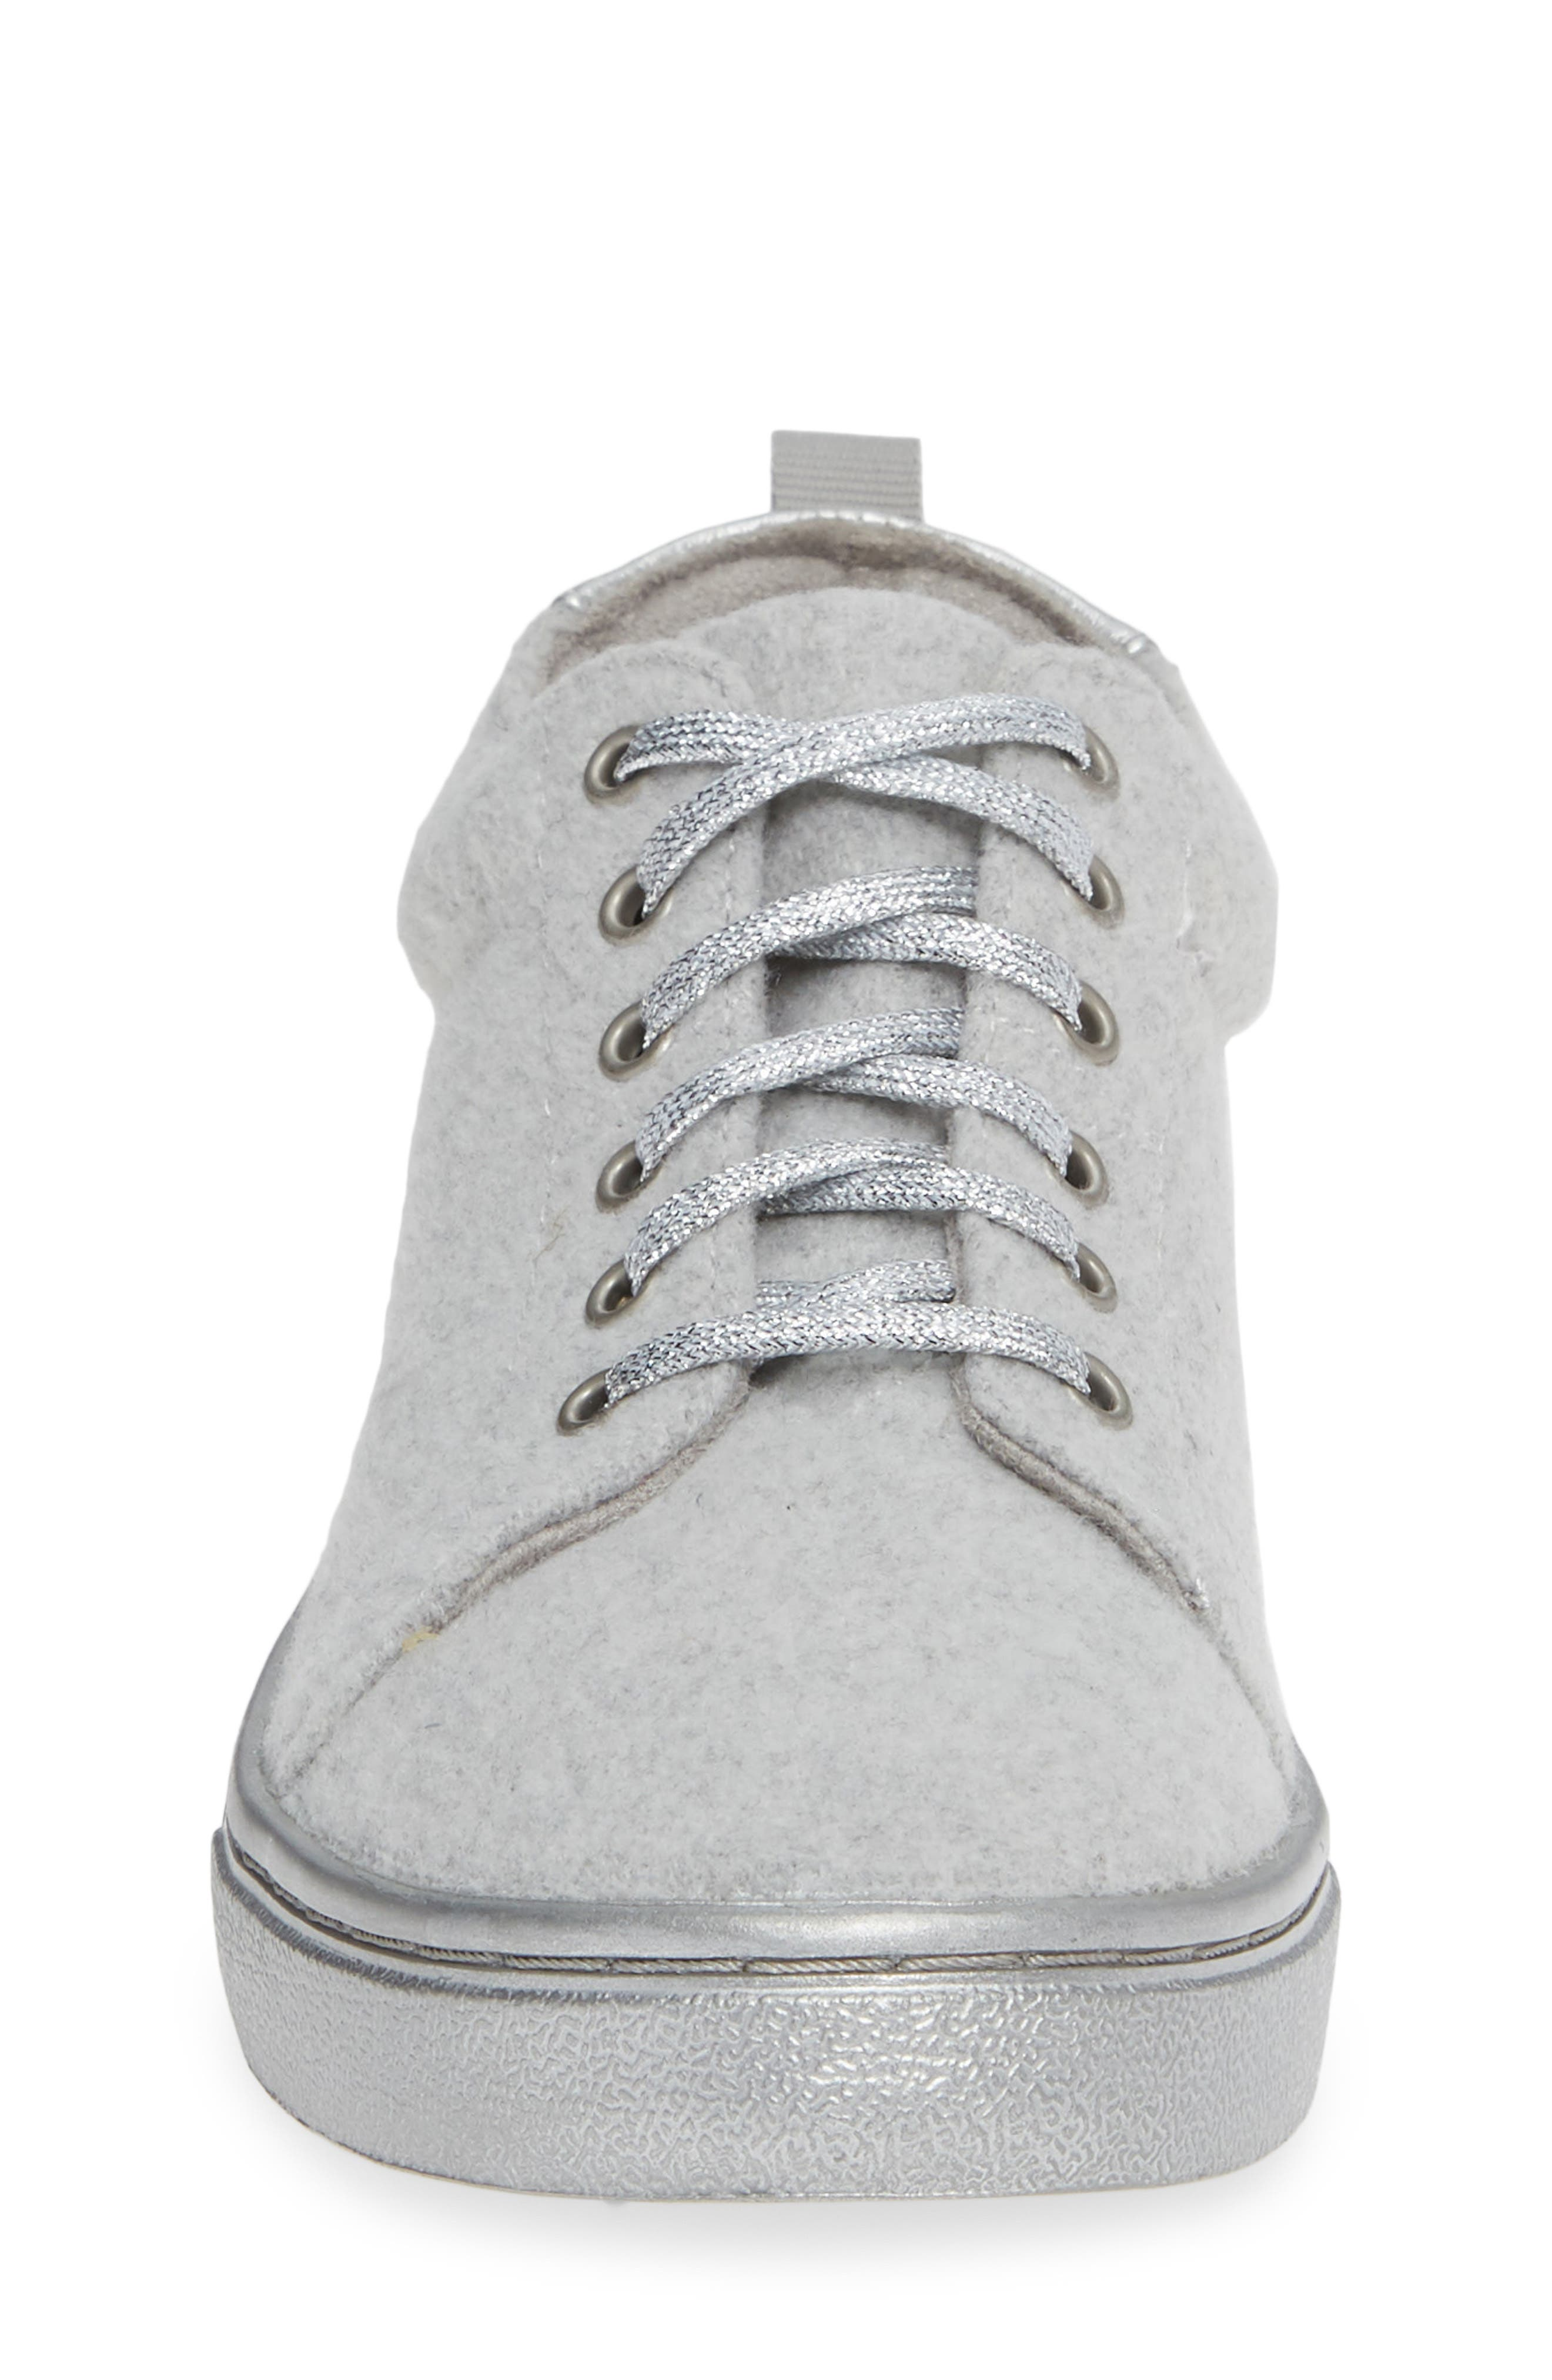 Lenny Mid Top Sneaker,                             Alternate thumbnail 4, color,                             DRIZZLE GREY FELT